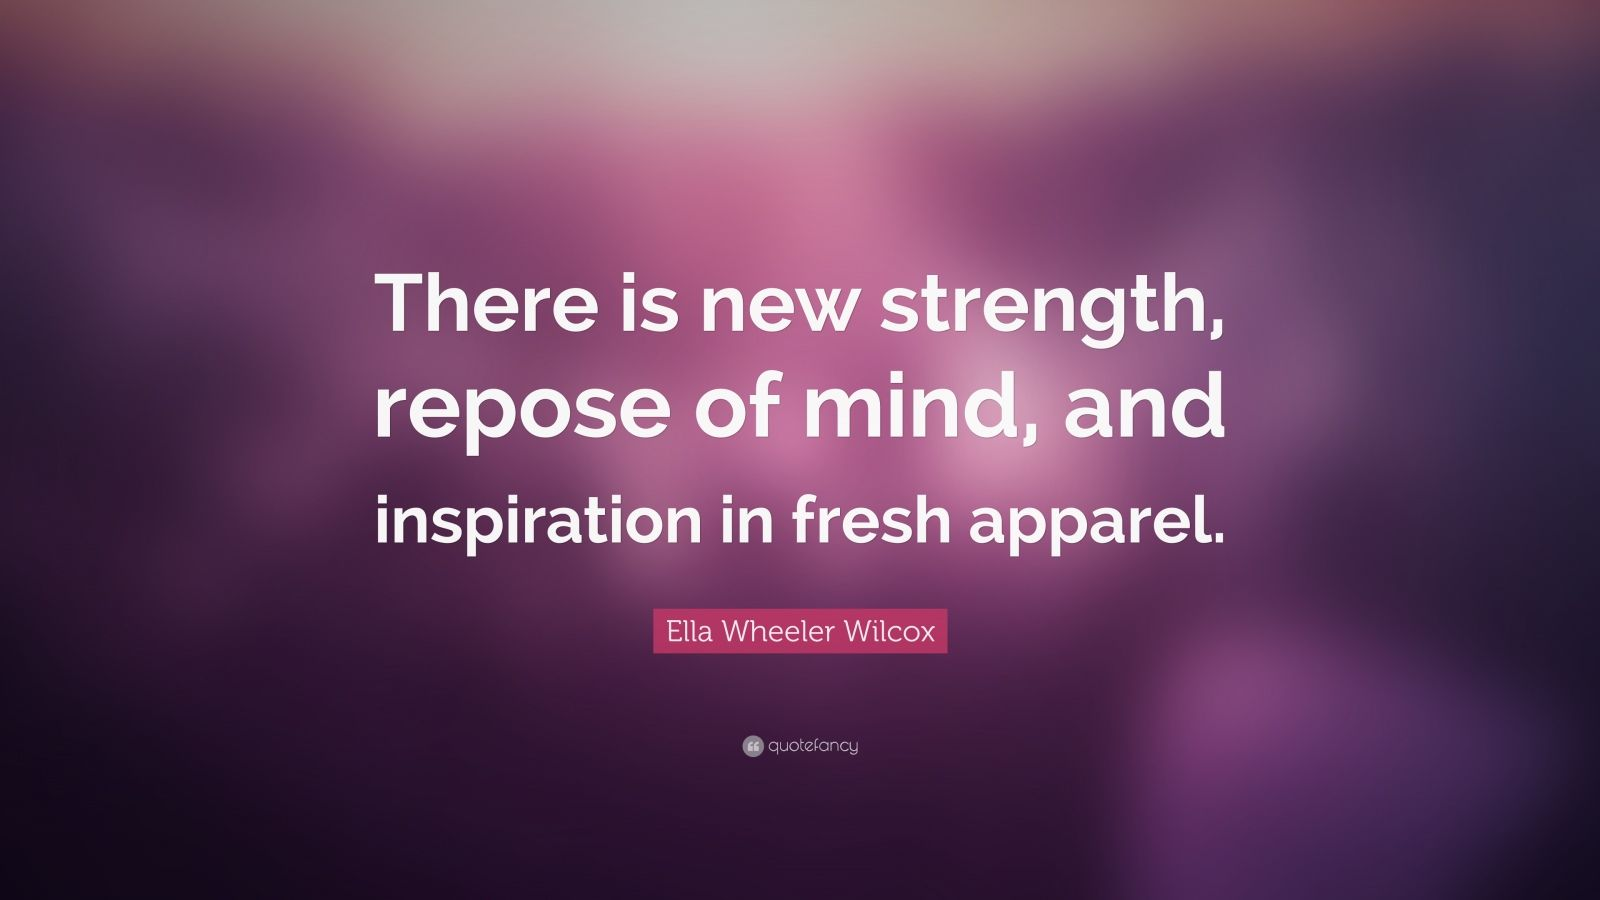 """Ella Wheeler Wilcox Quote: """"There is new strength, repose of mind, and inspiration in fresh apparel."""""""